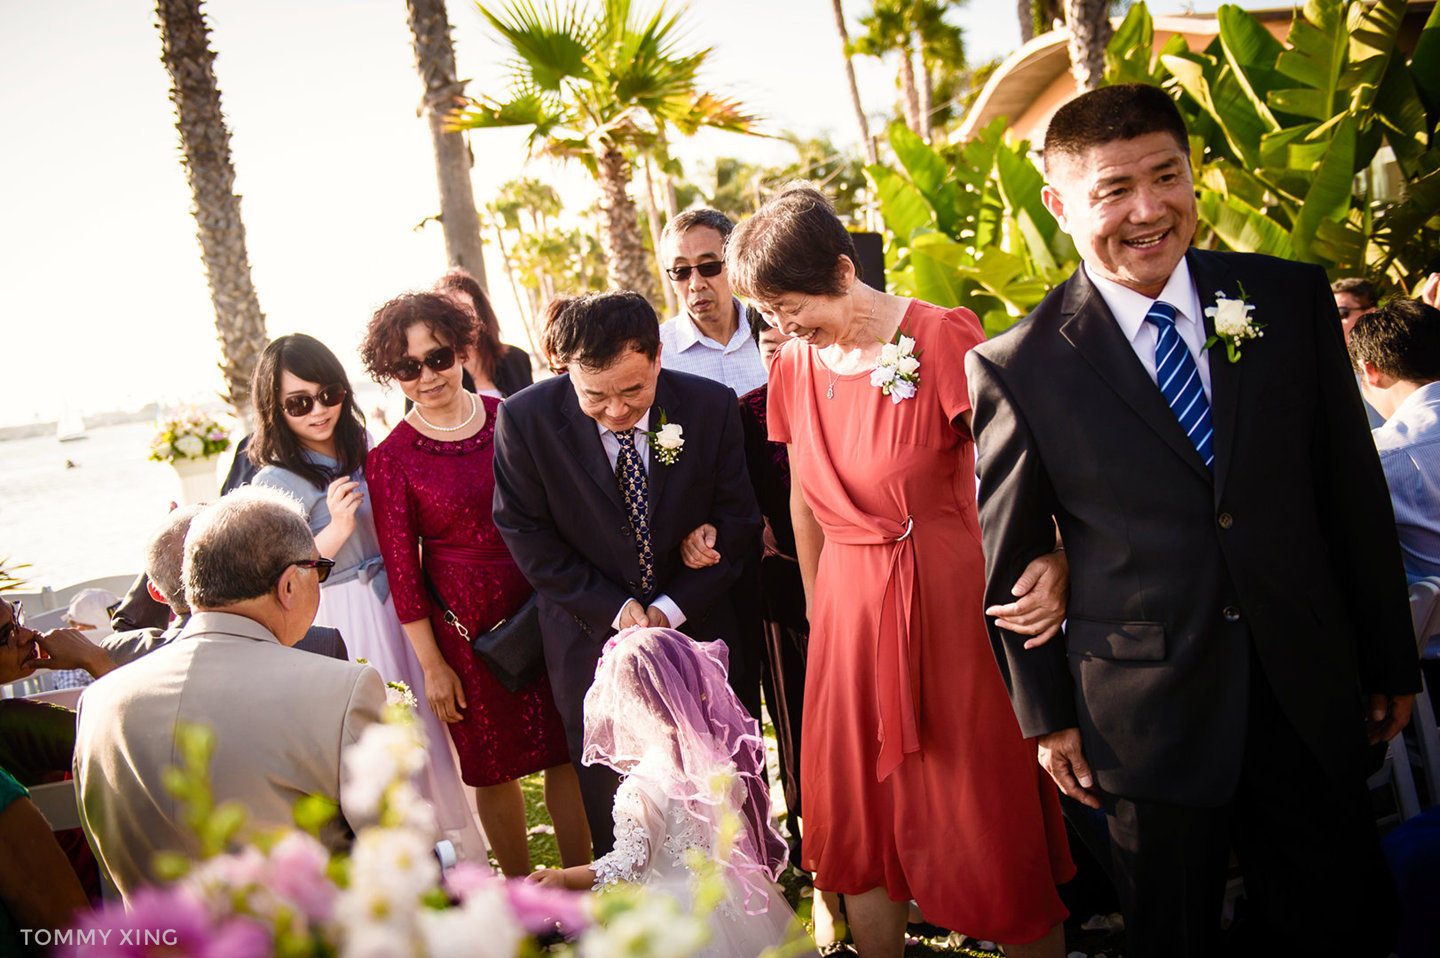 Paradise Point Resort Wedding Xiaolu & Bin San Diego 圣地亚哥婚礼摄影跟拍 Tommy Xing Photography 洛杉矶婚礼婚纱照摄影师 184.jpg